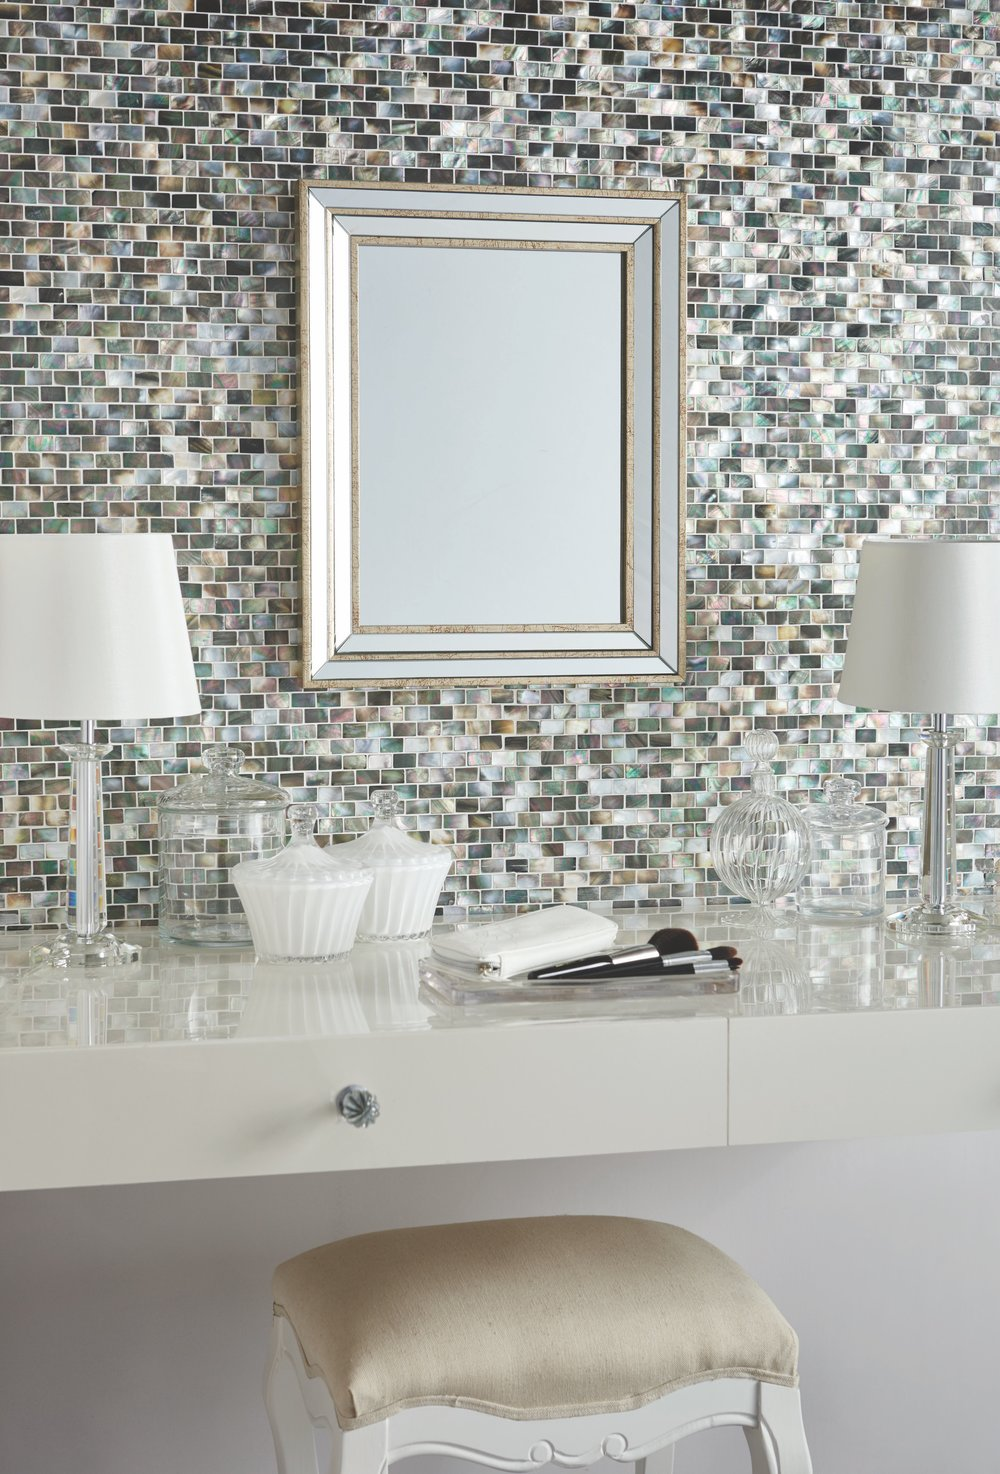 Original Style_Mosaics_Mother of Pearl BrickbondEW-MOPDBBMOS.jpg